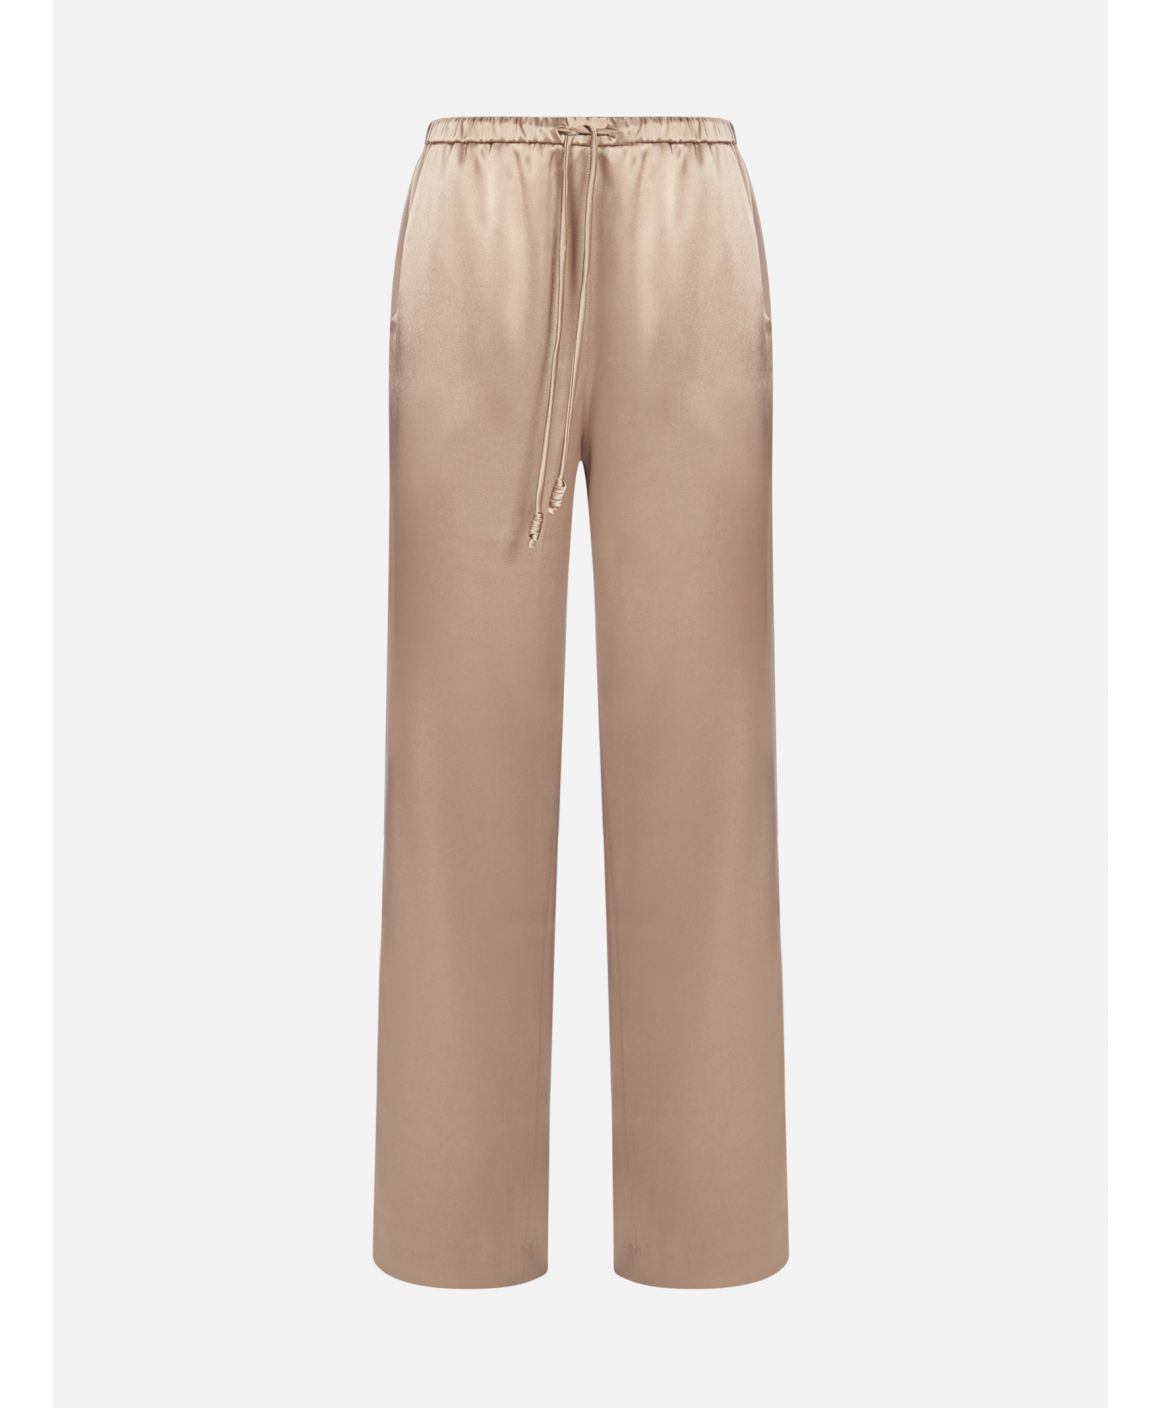 Tupsa satin trousers